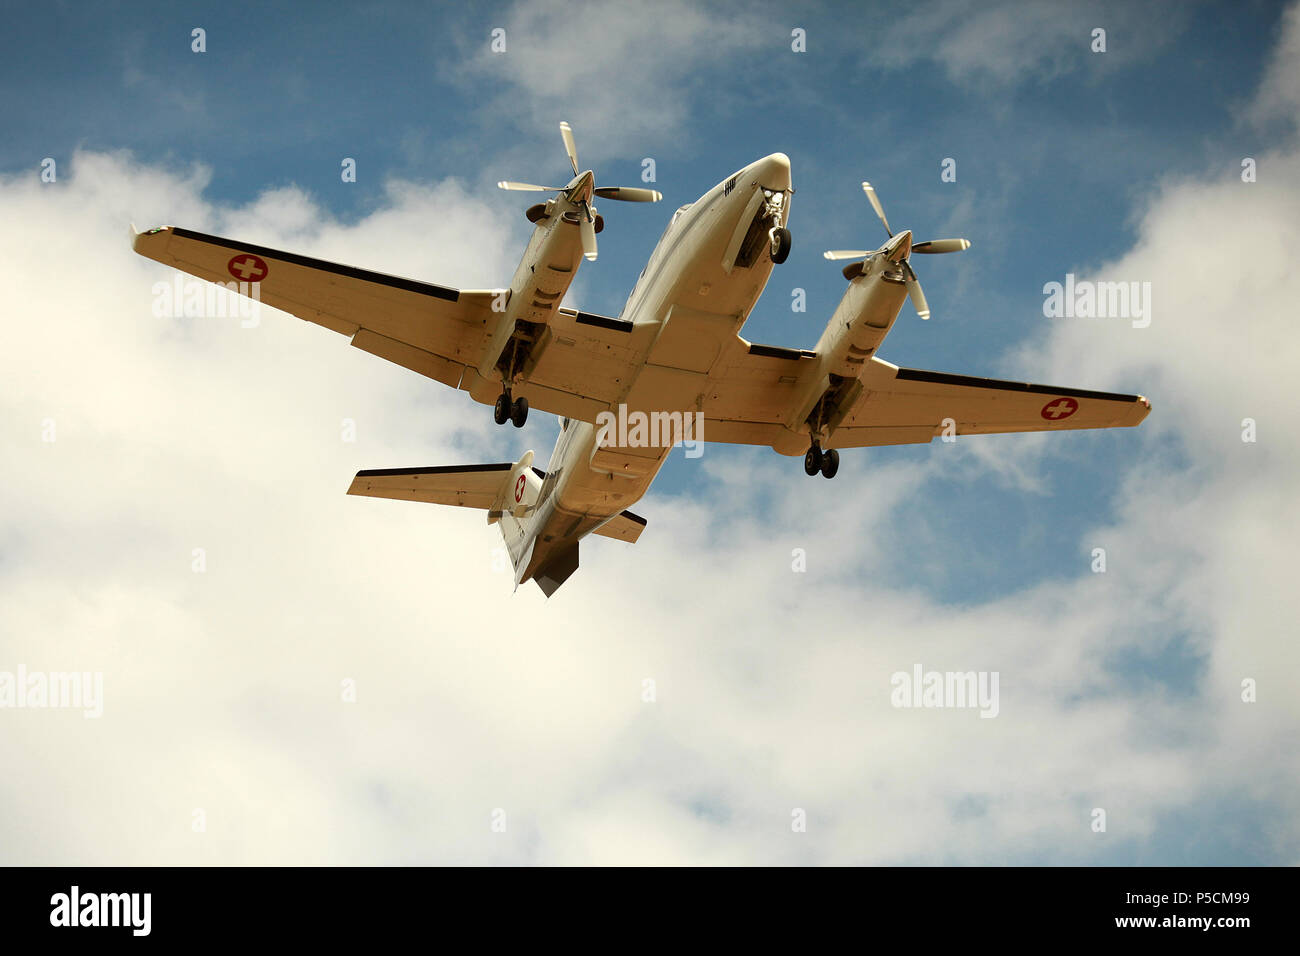 low flying aircraft - Stock Image